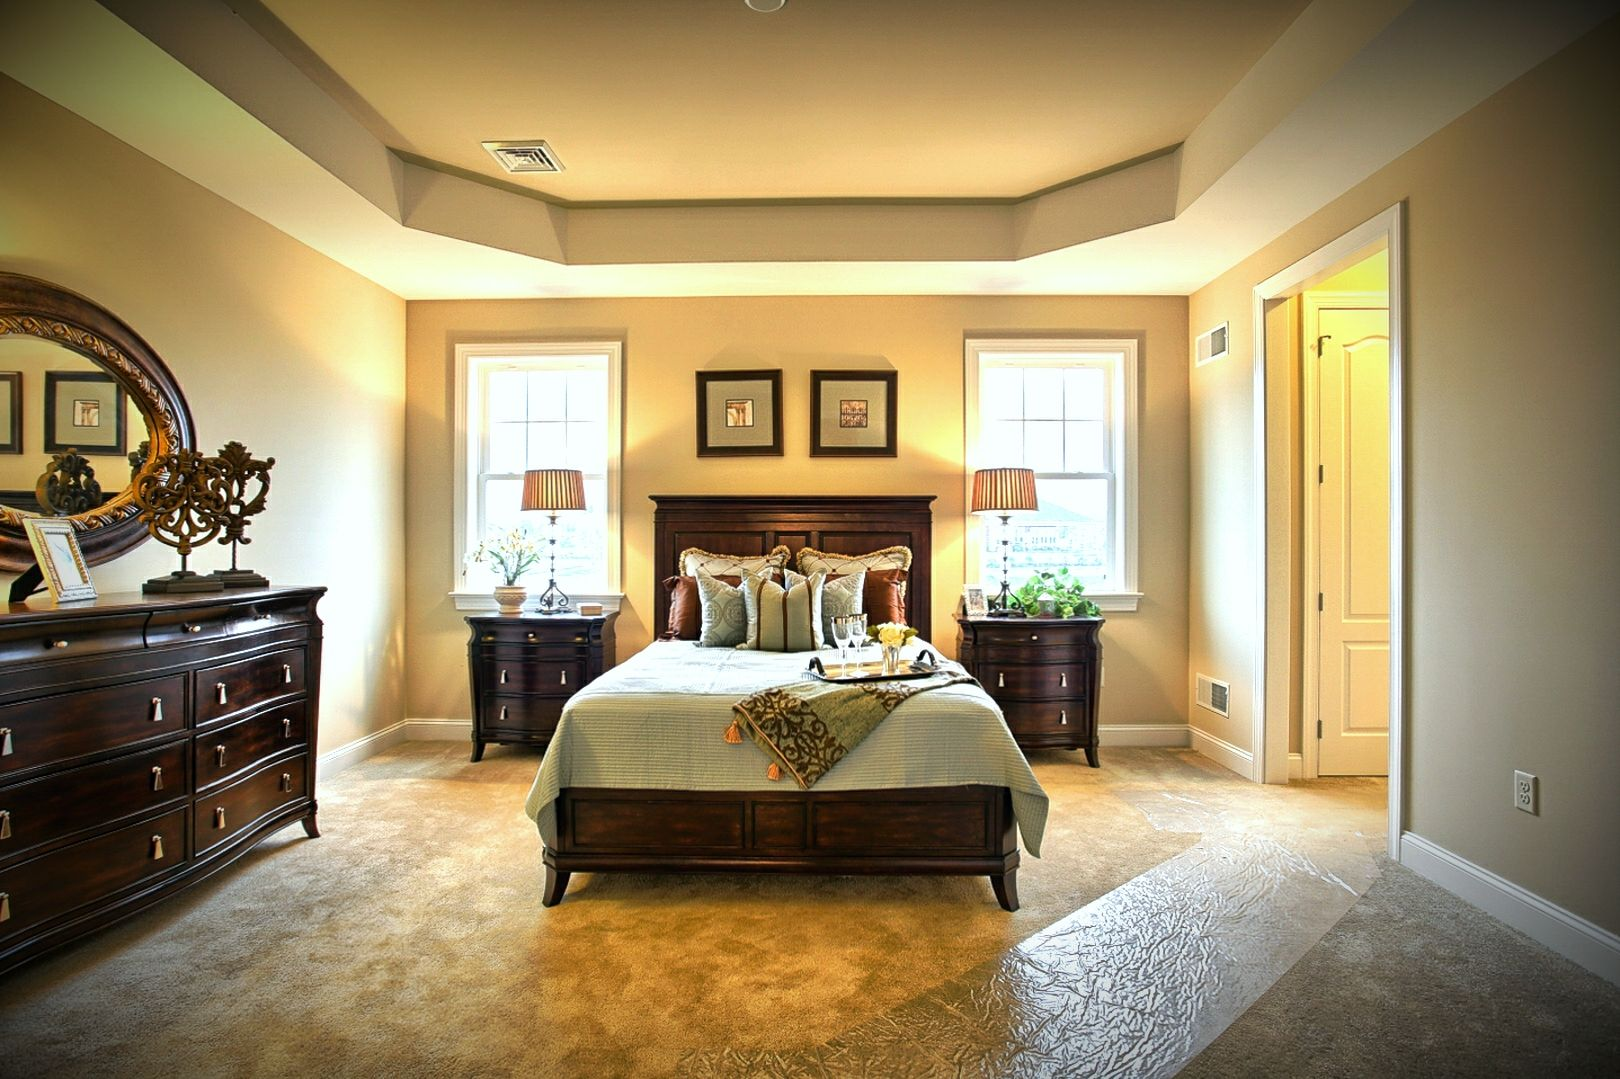 Master bedroom suite with adjoining master bathroom and